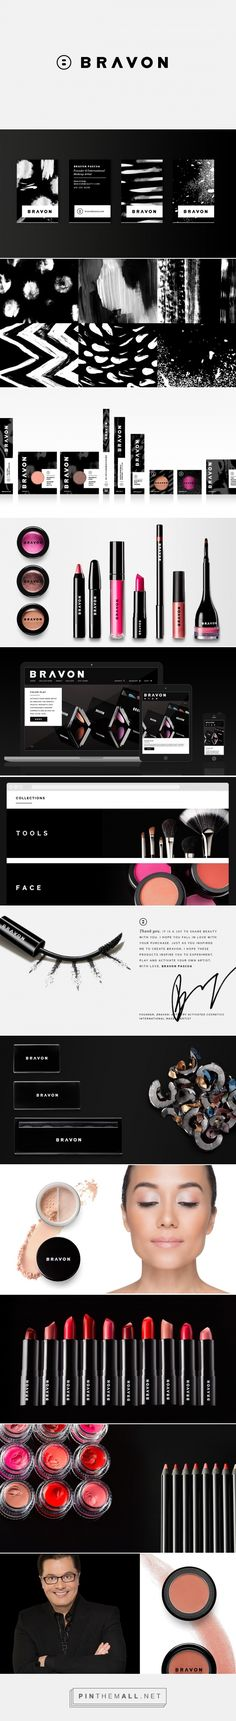 Bravon Beauty Cosmetic Branding and Packaging by Bartlett Brands | Fivestar Branding Agency – Design and Branding Agency & Curated Inspiration Gallery